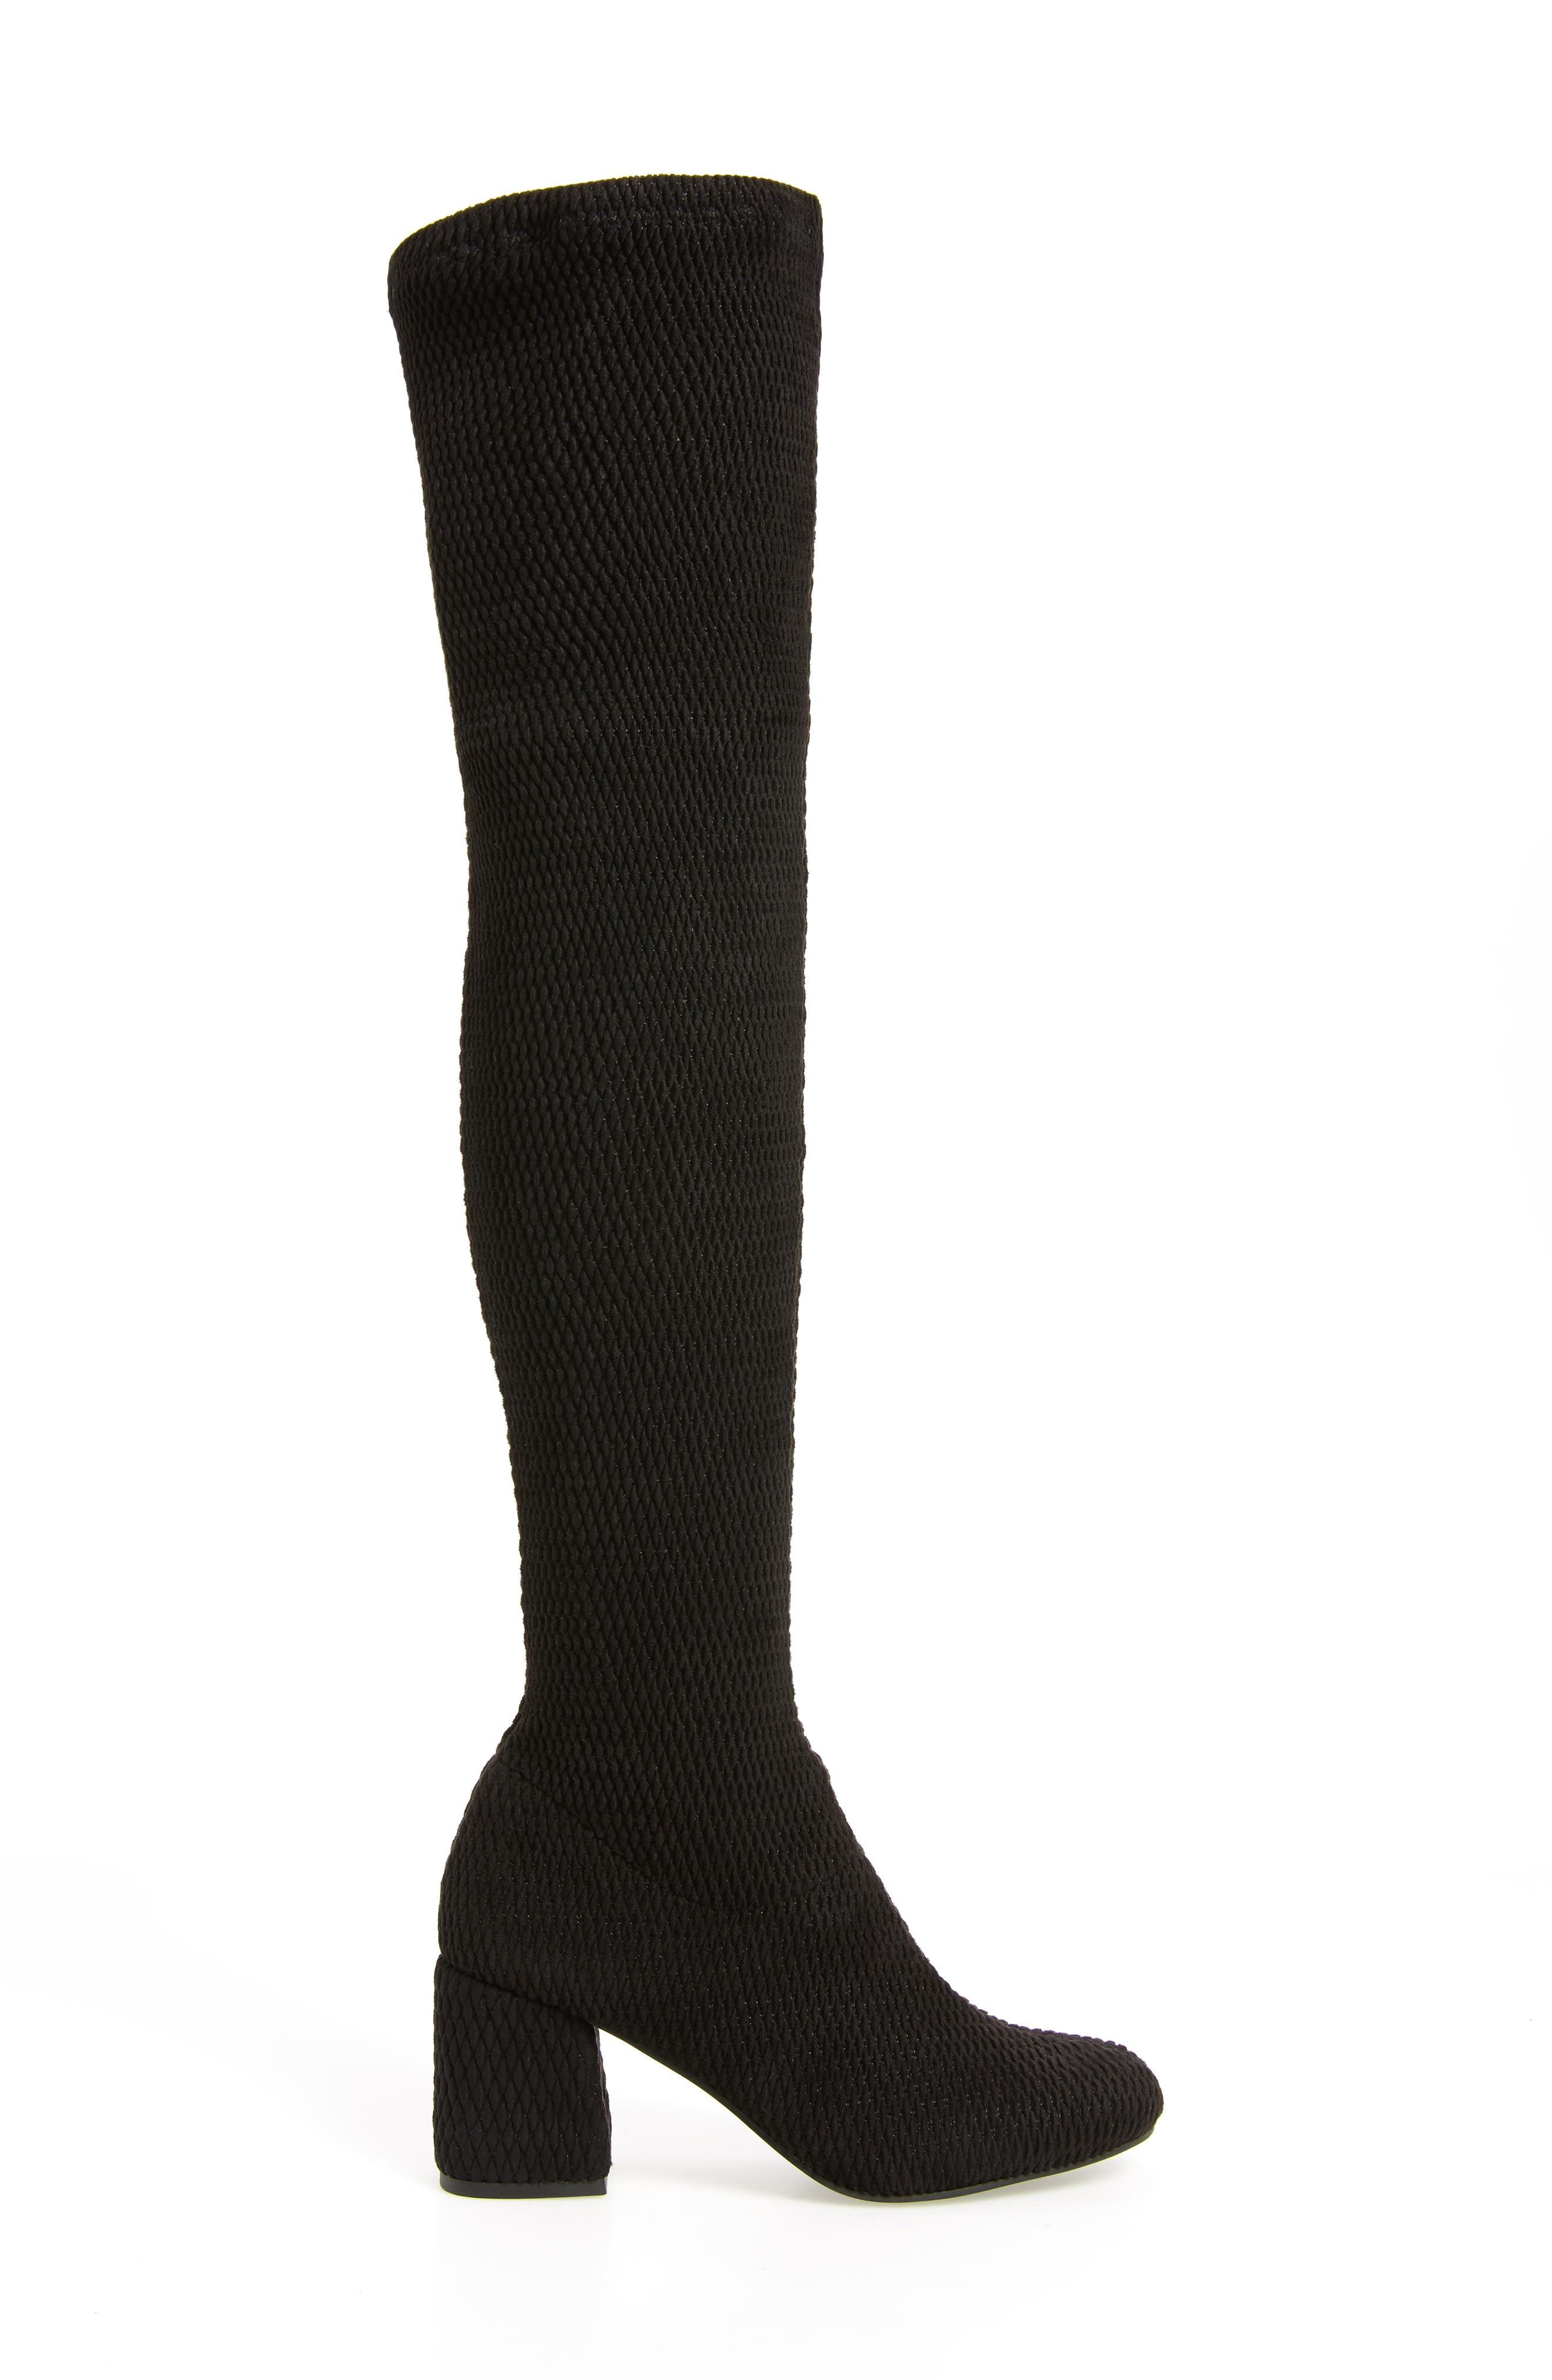 Alternate Image 3  - Seychelles Act One Stretch Over the Knee Boot (Women)